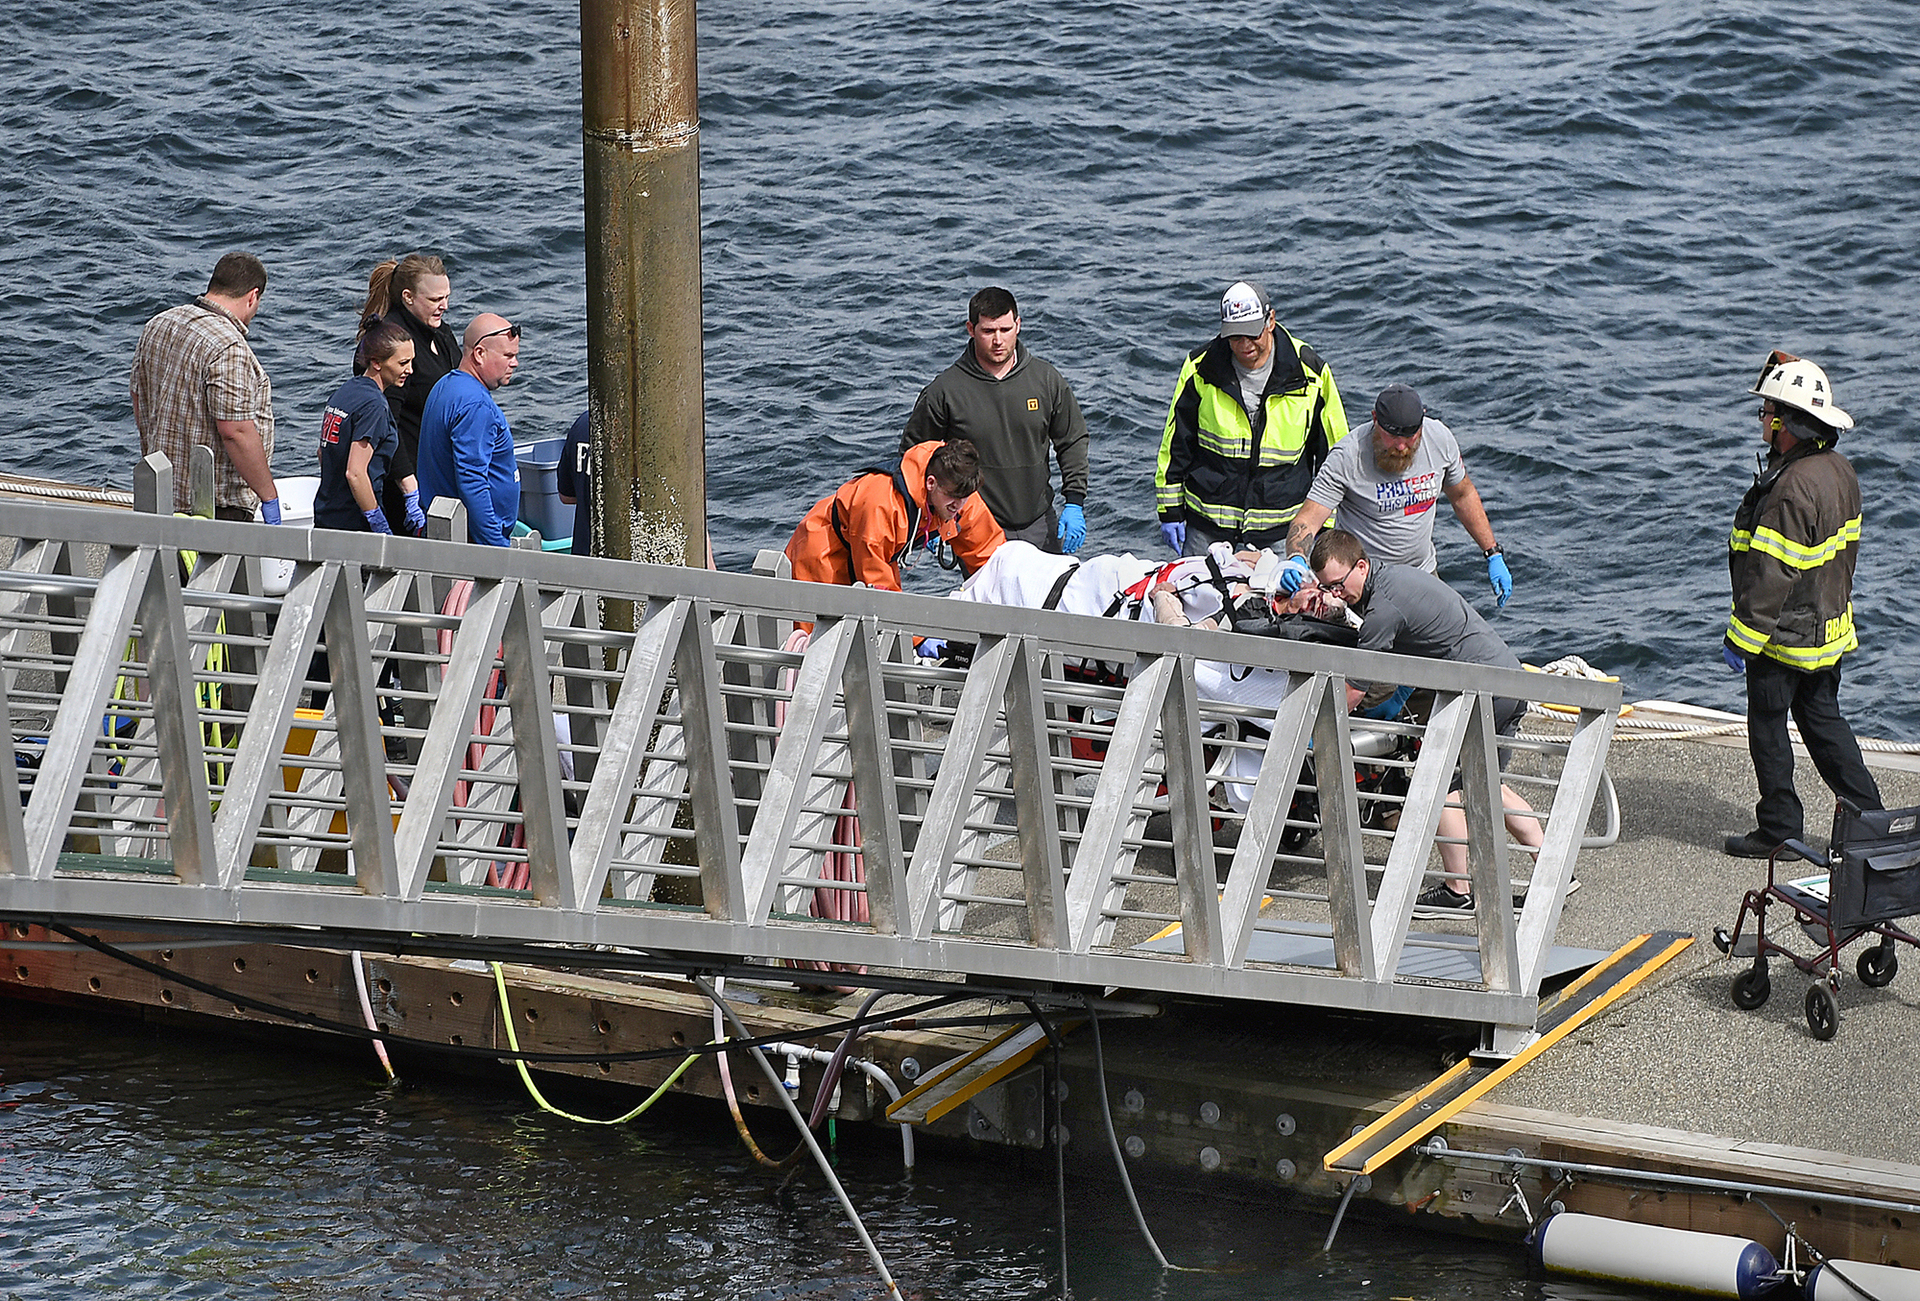 Search for two missing as four die, 10 rescued after midair plane collision in Alaska